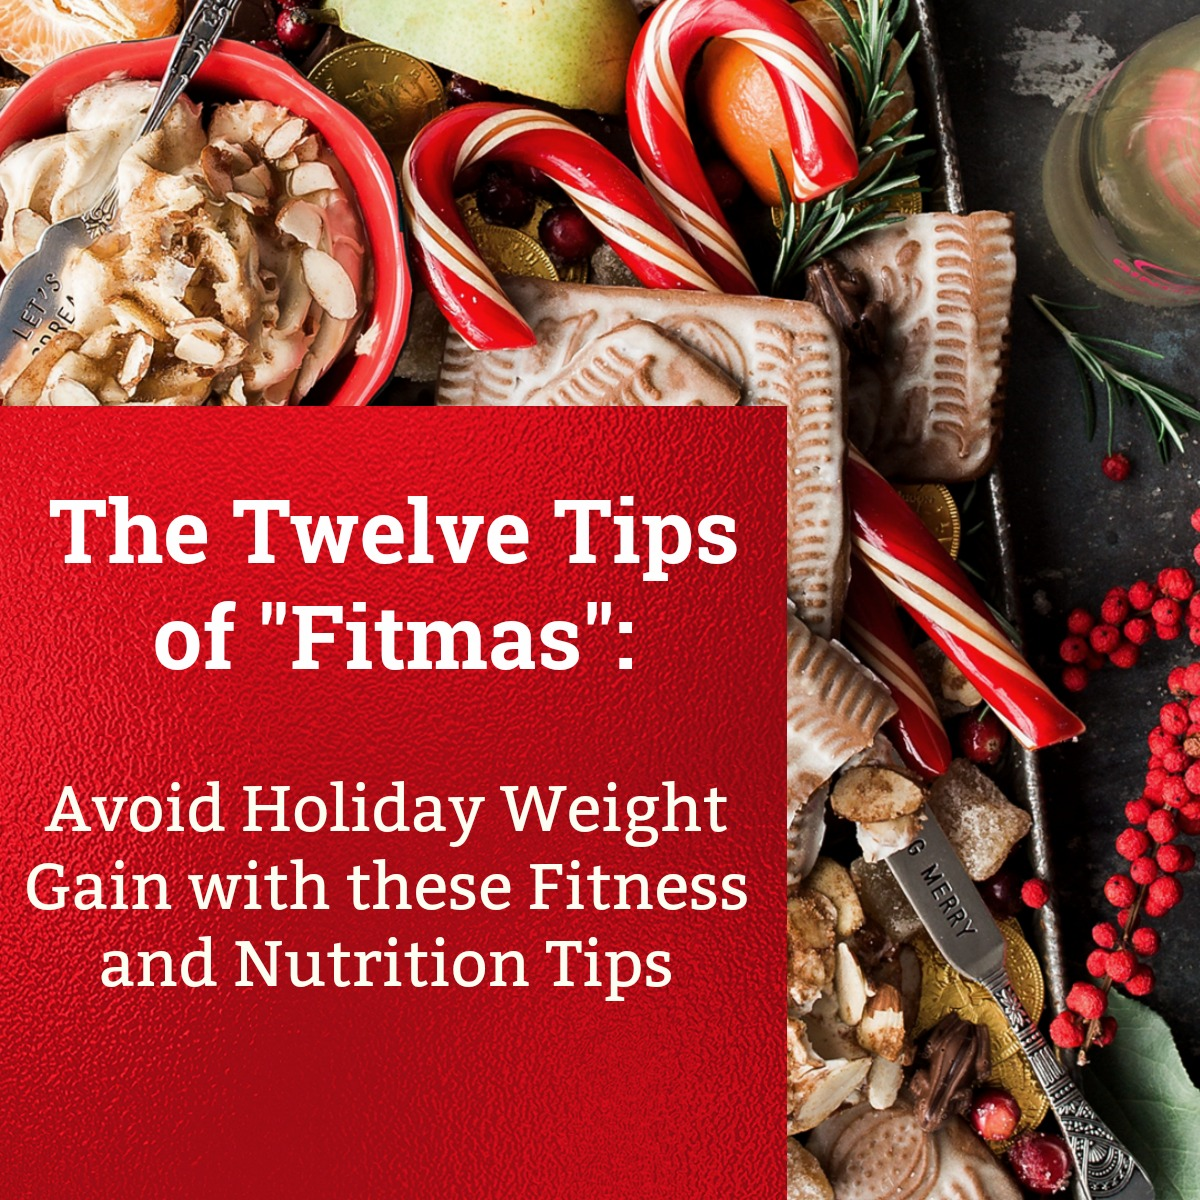 How Nutritionists Avoid Winter WeightGain advise